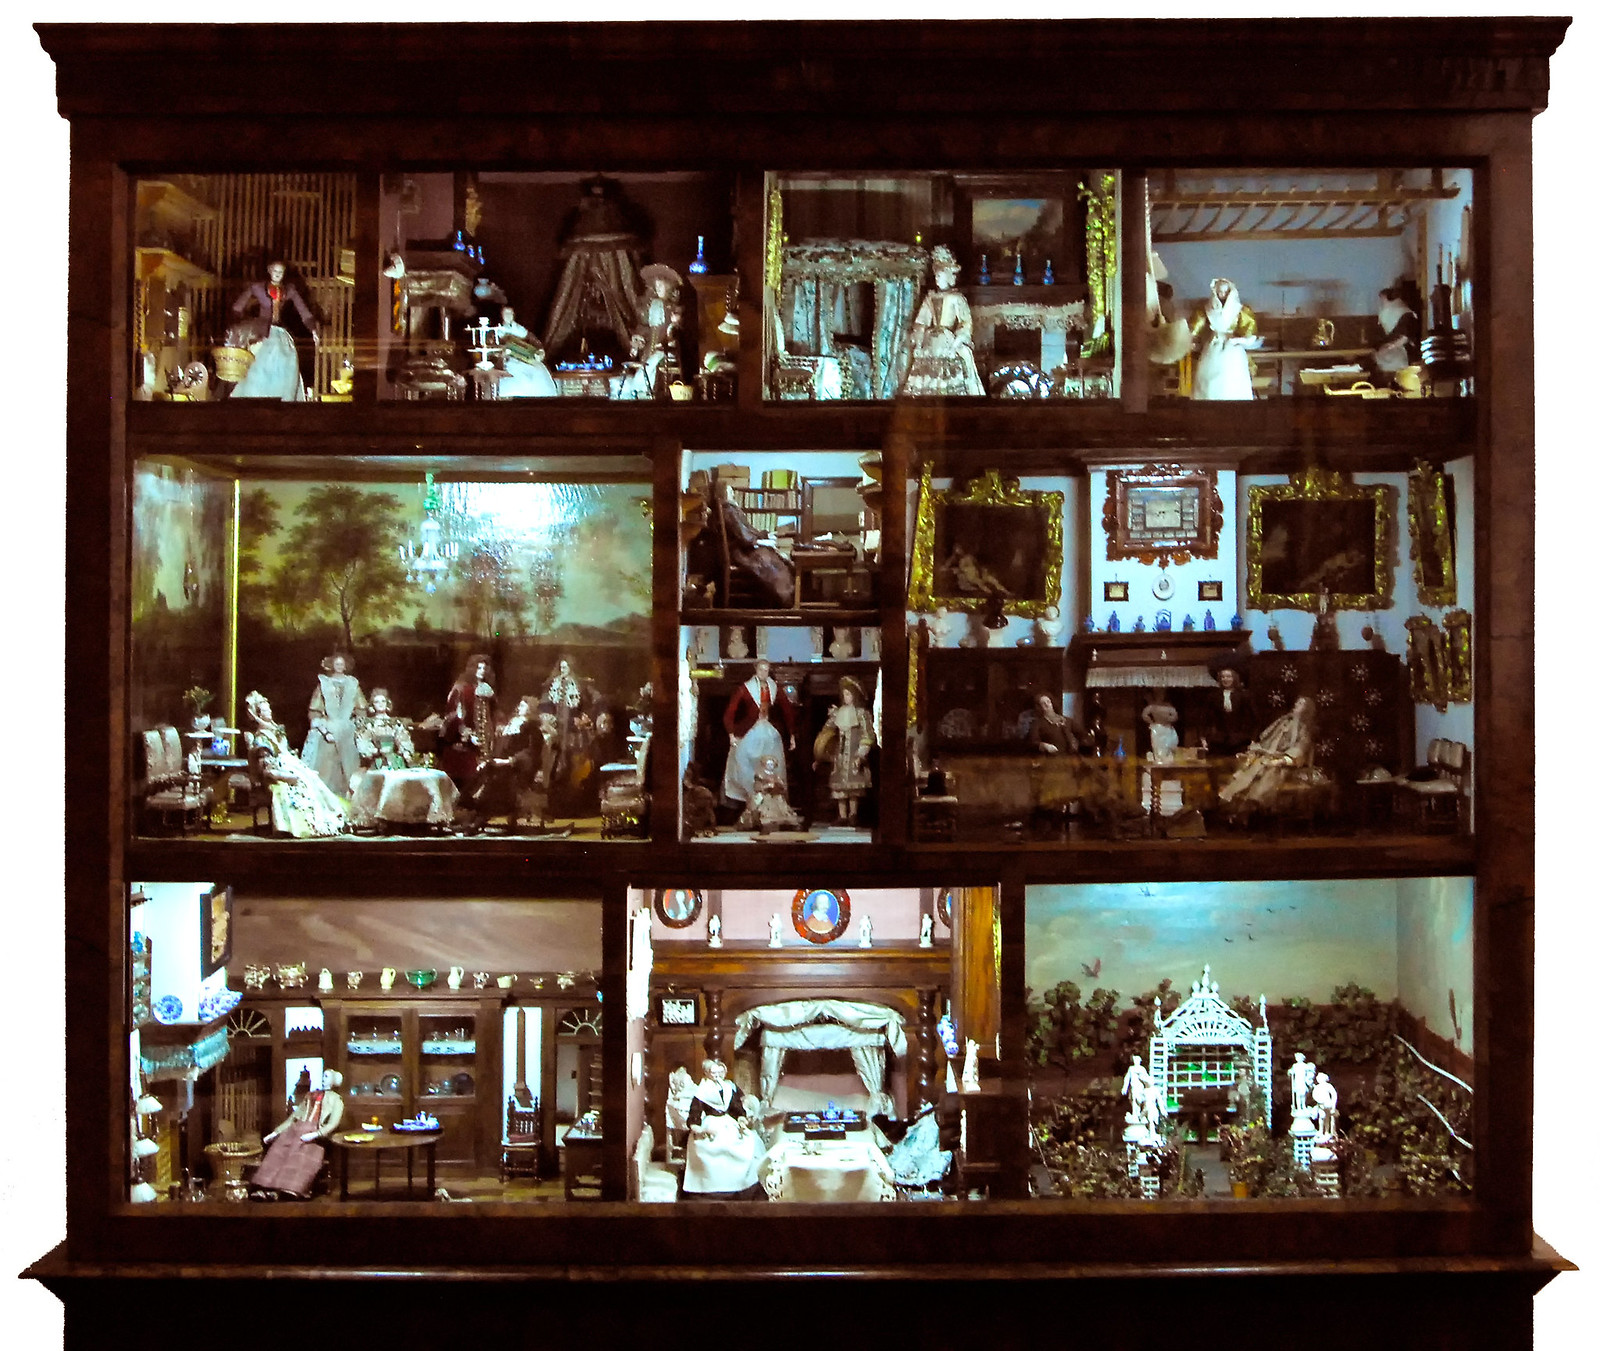 Dollhouse Miniatures Amsterdam: The Magical Miniature World Of Antique Dollhouses